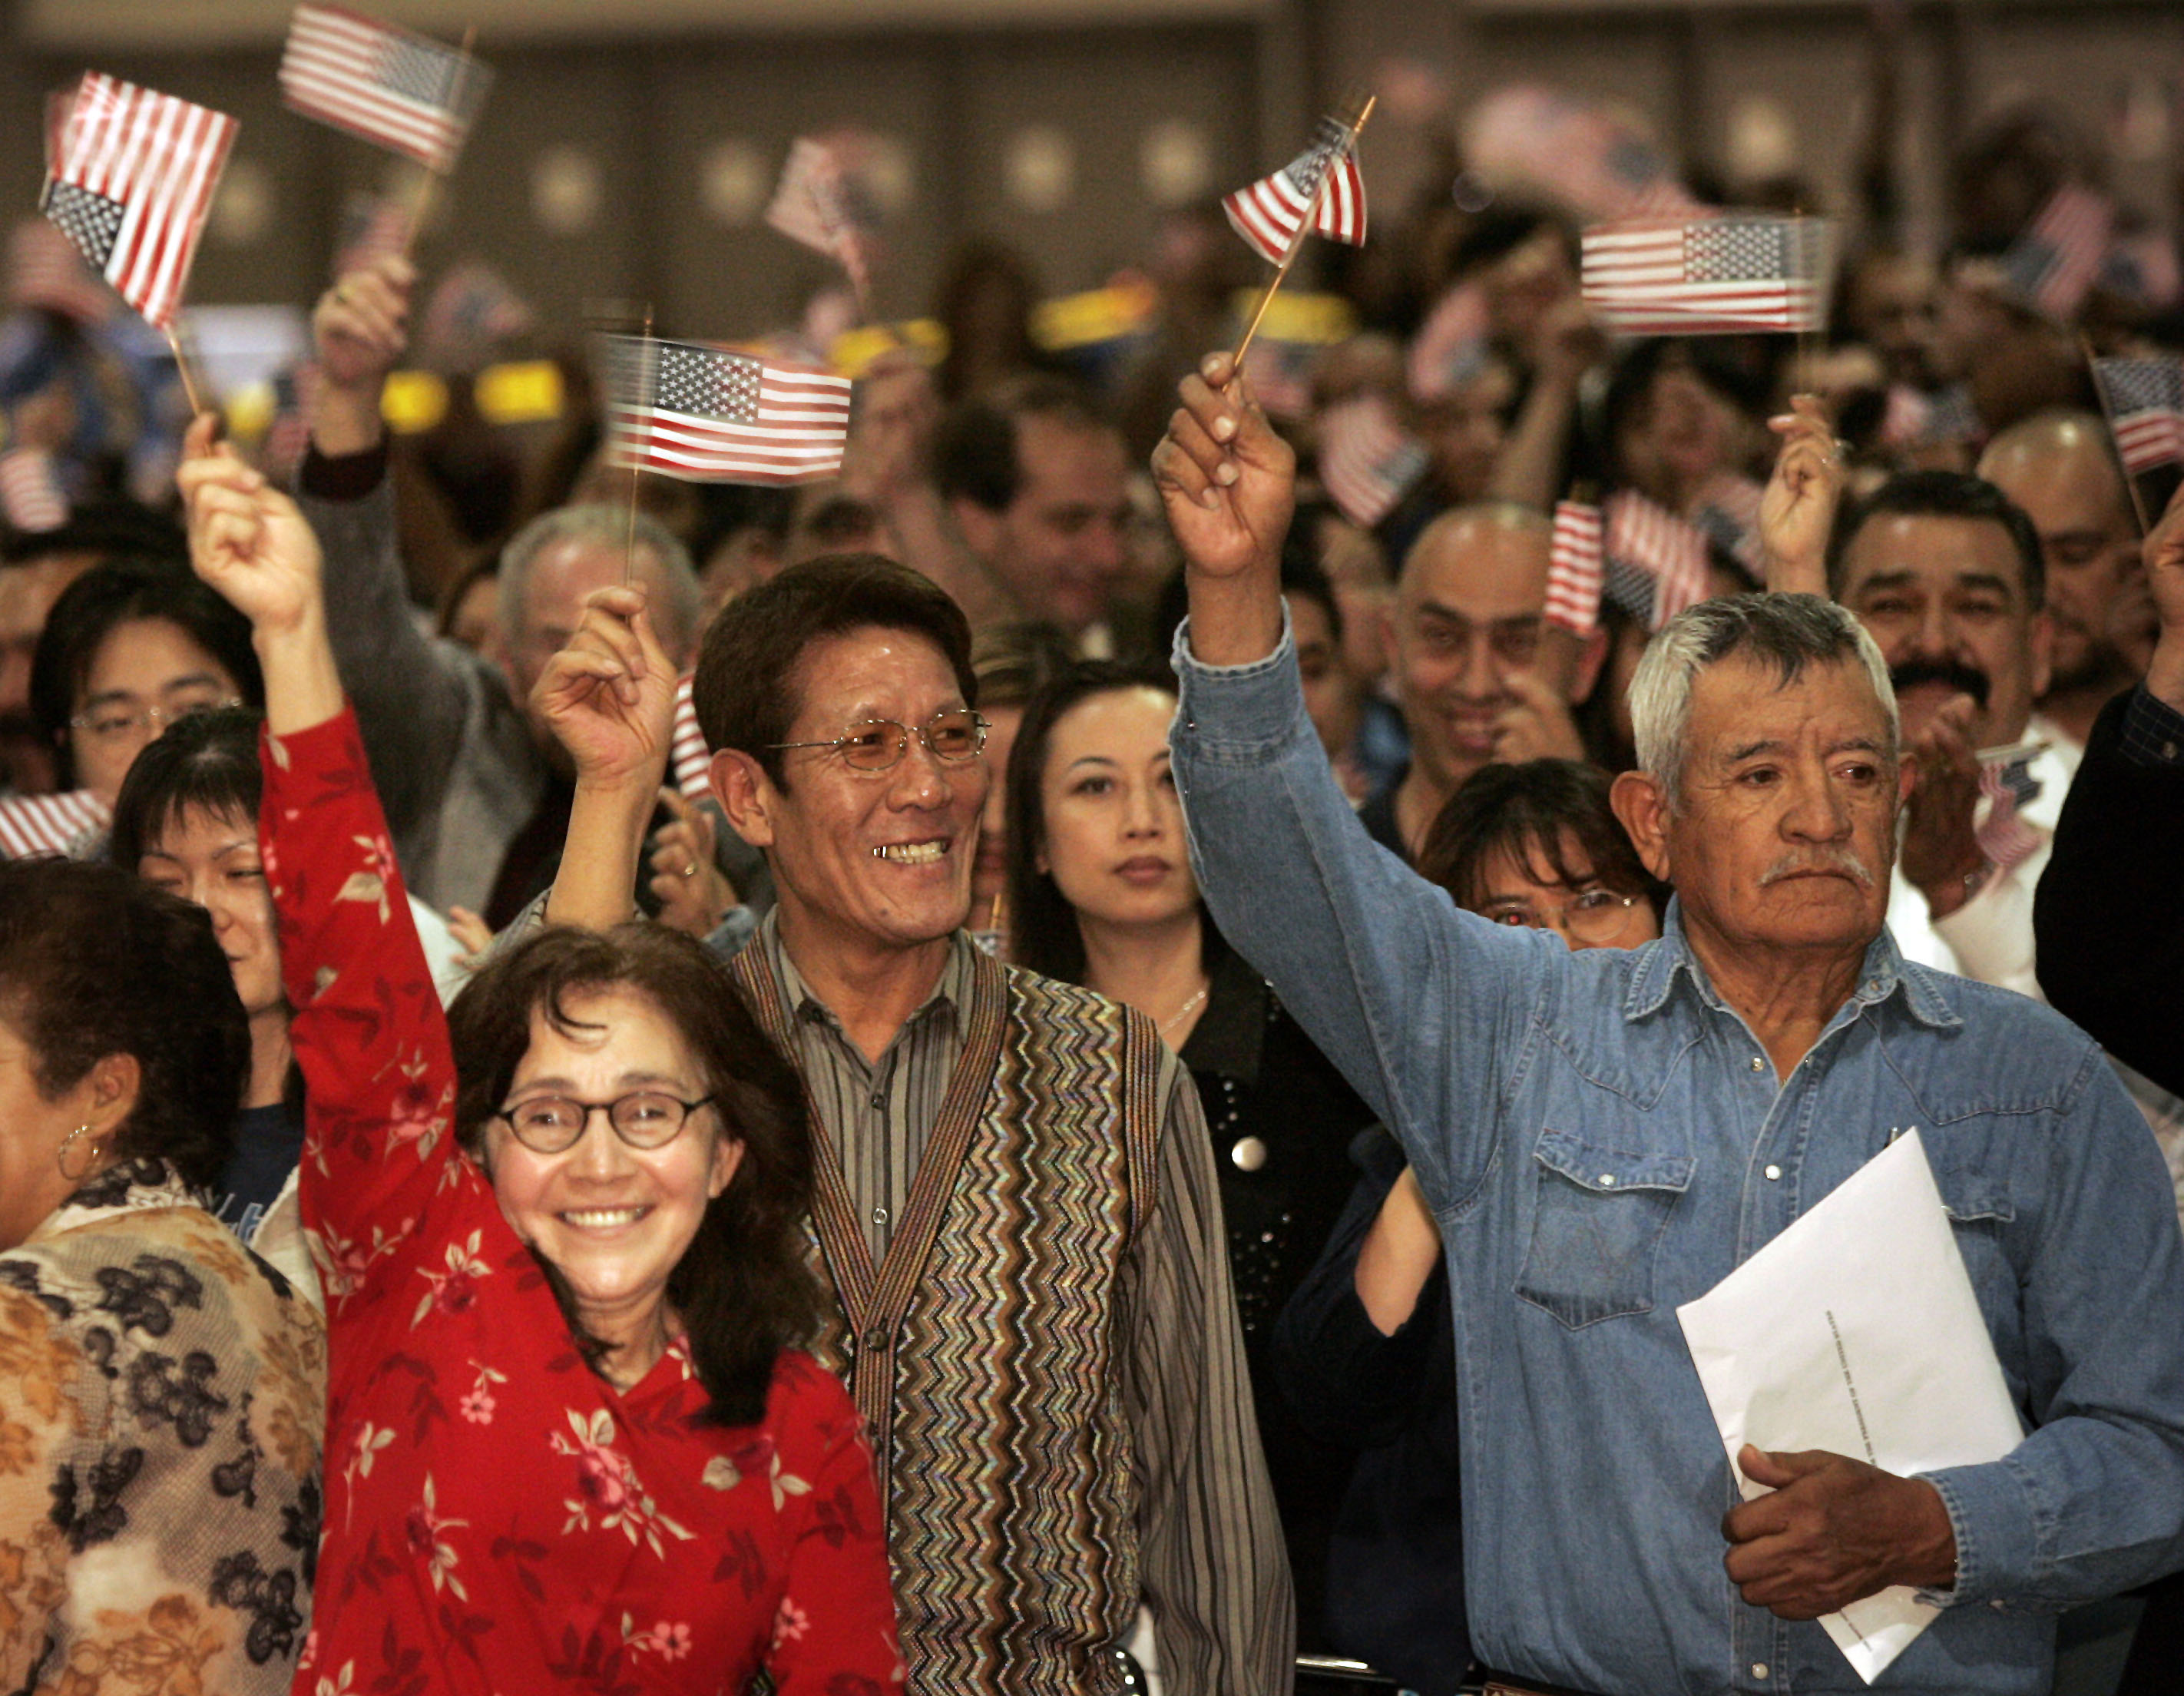 03/22/2007. Los Angeles. New U.S. citizens celebrate after taking the oath at a U.S. District Court